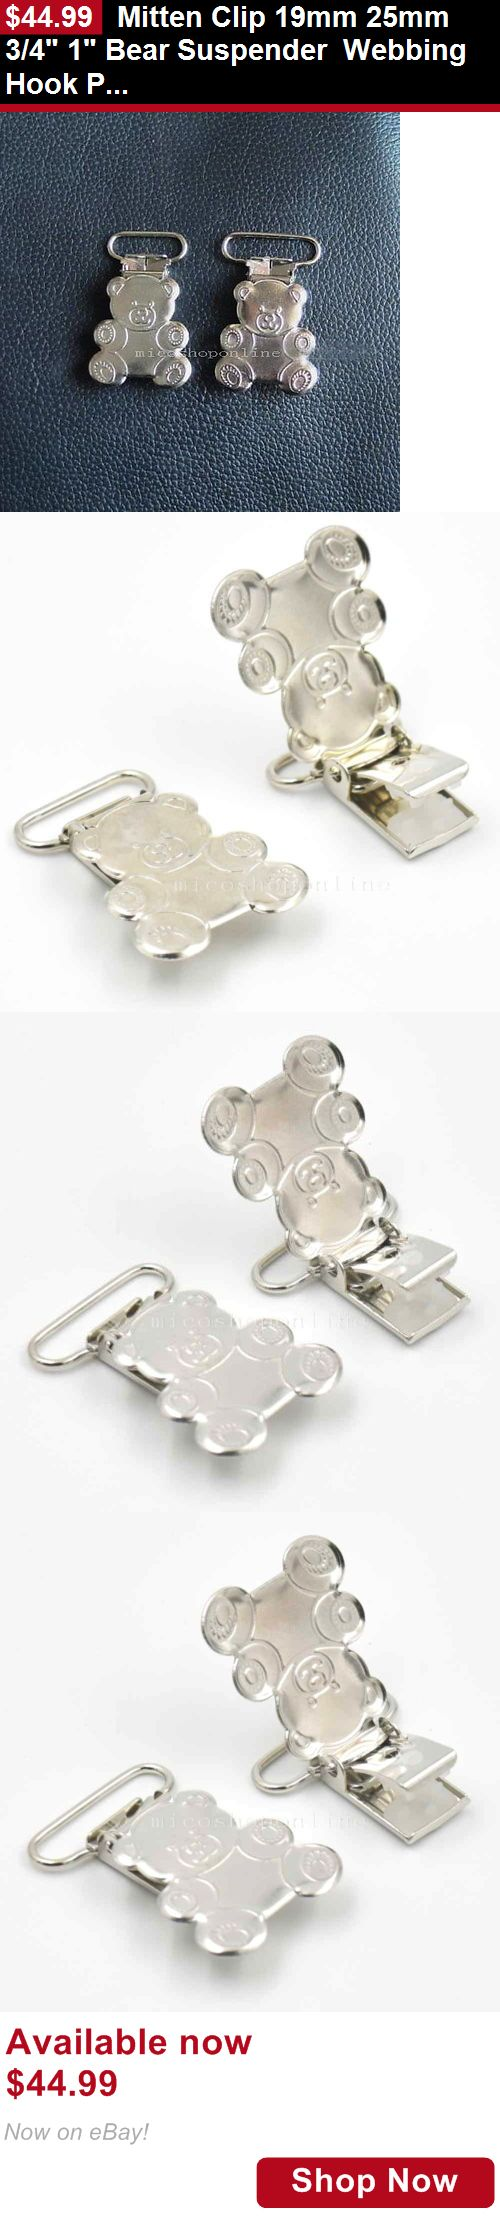 Pacifier Holders and Clips: Mitten Clip 19Mm 25Mm 3/4 1 Bear Suspender Webbing Hook Paci Pacifier Holder BUY IT NOW ONLY: $44.99